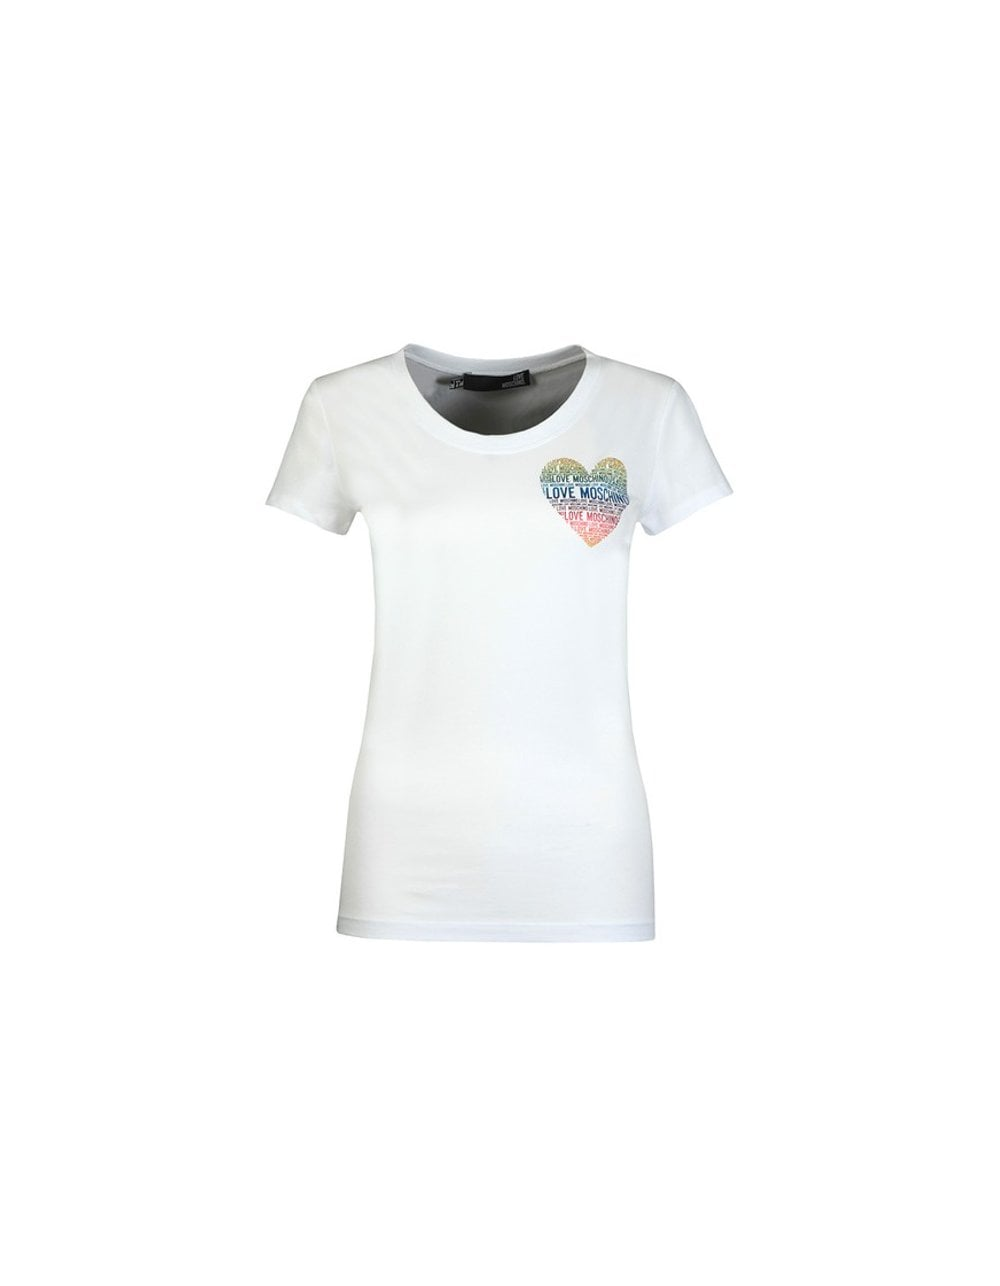 Love Moschino RAINBOW HEART TEE COLOUR: GREY